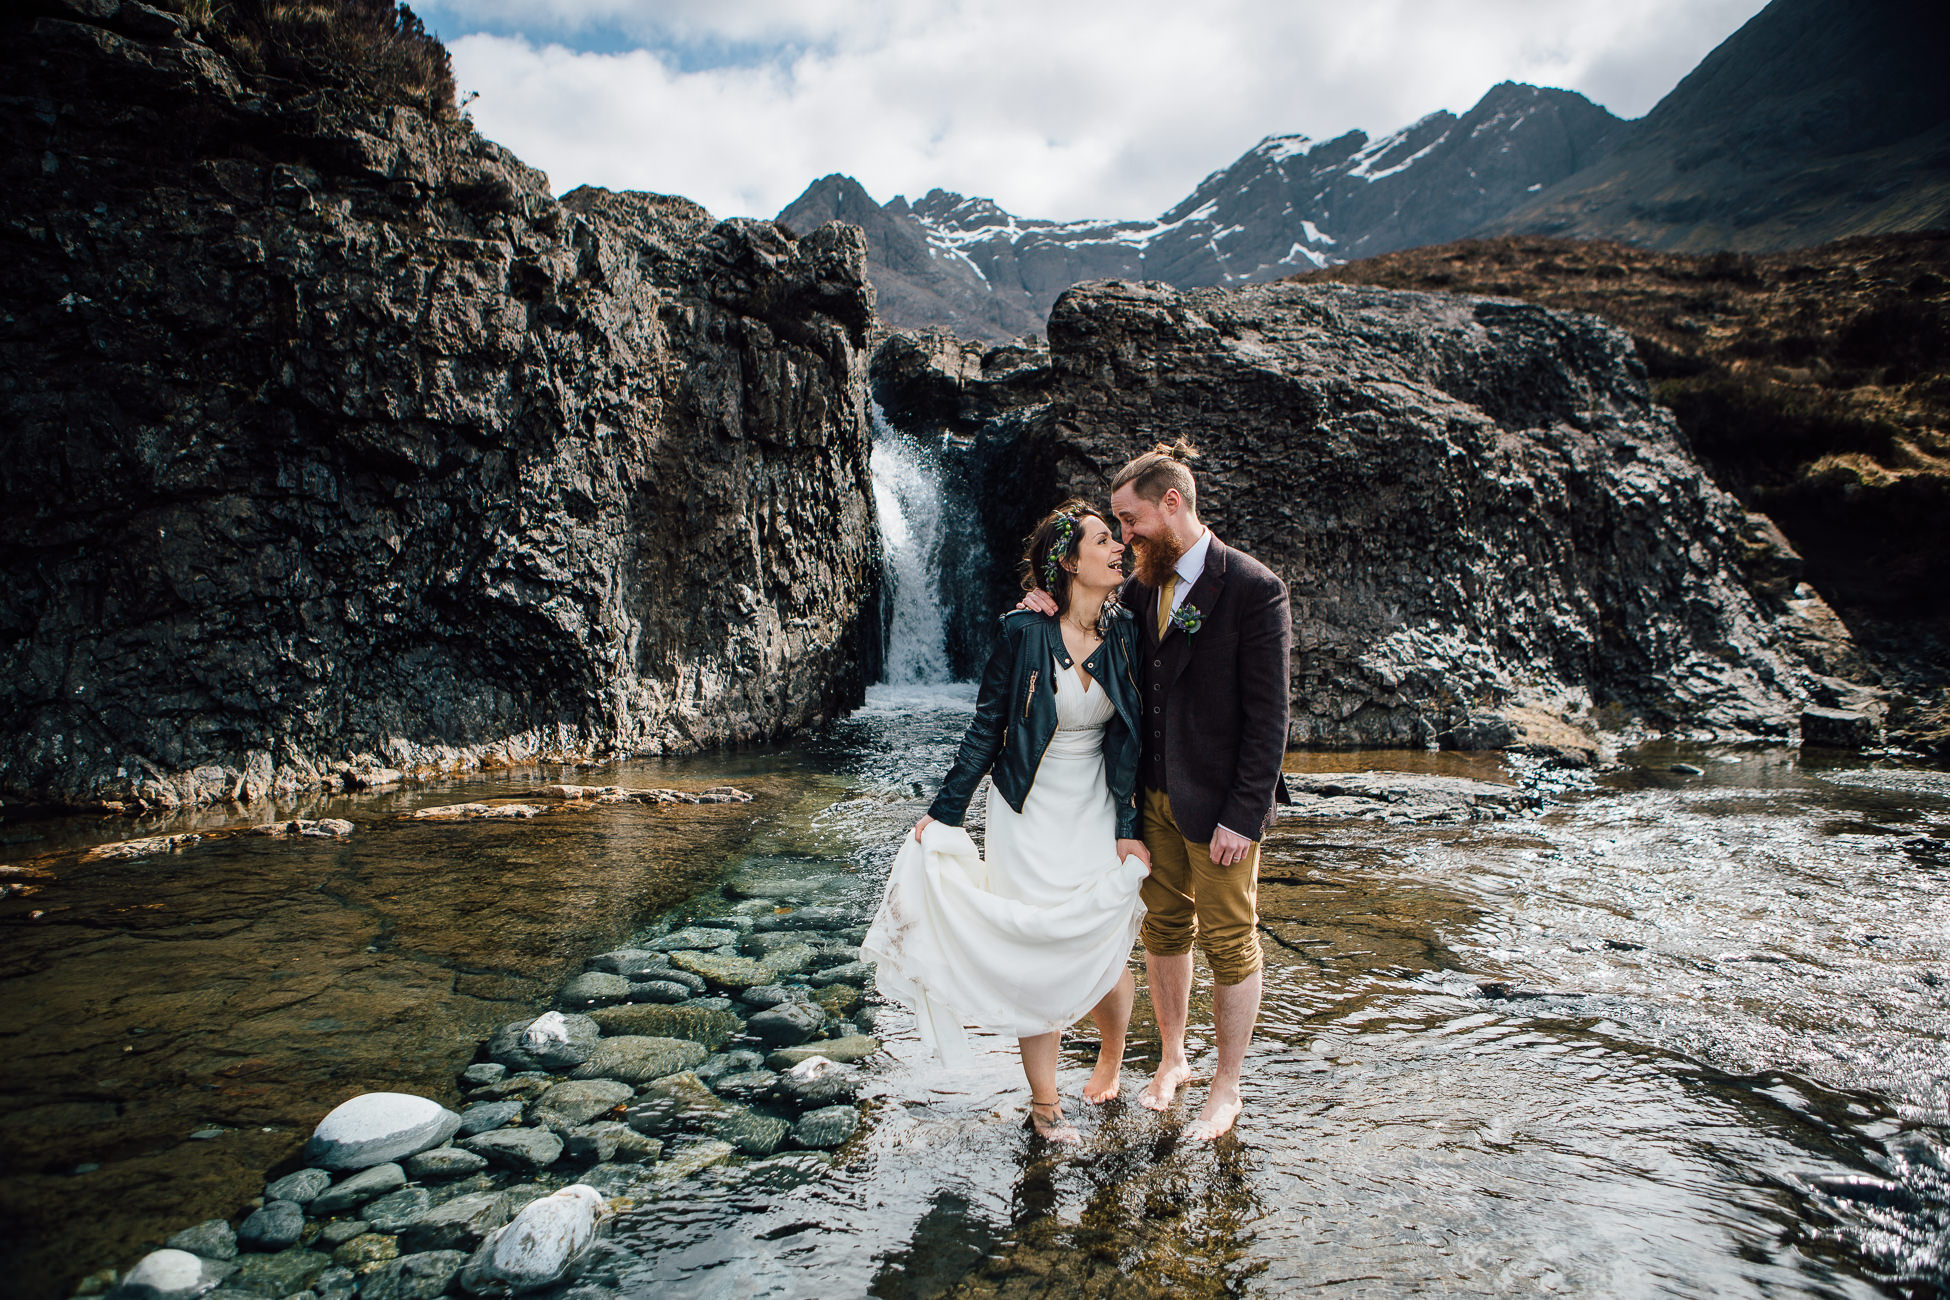 Bride and groom standing in water at Fairy Pools Isle of Skye snow on mountains